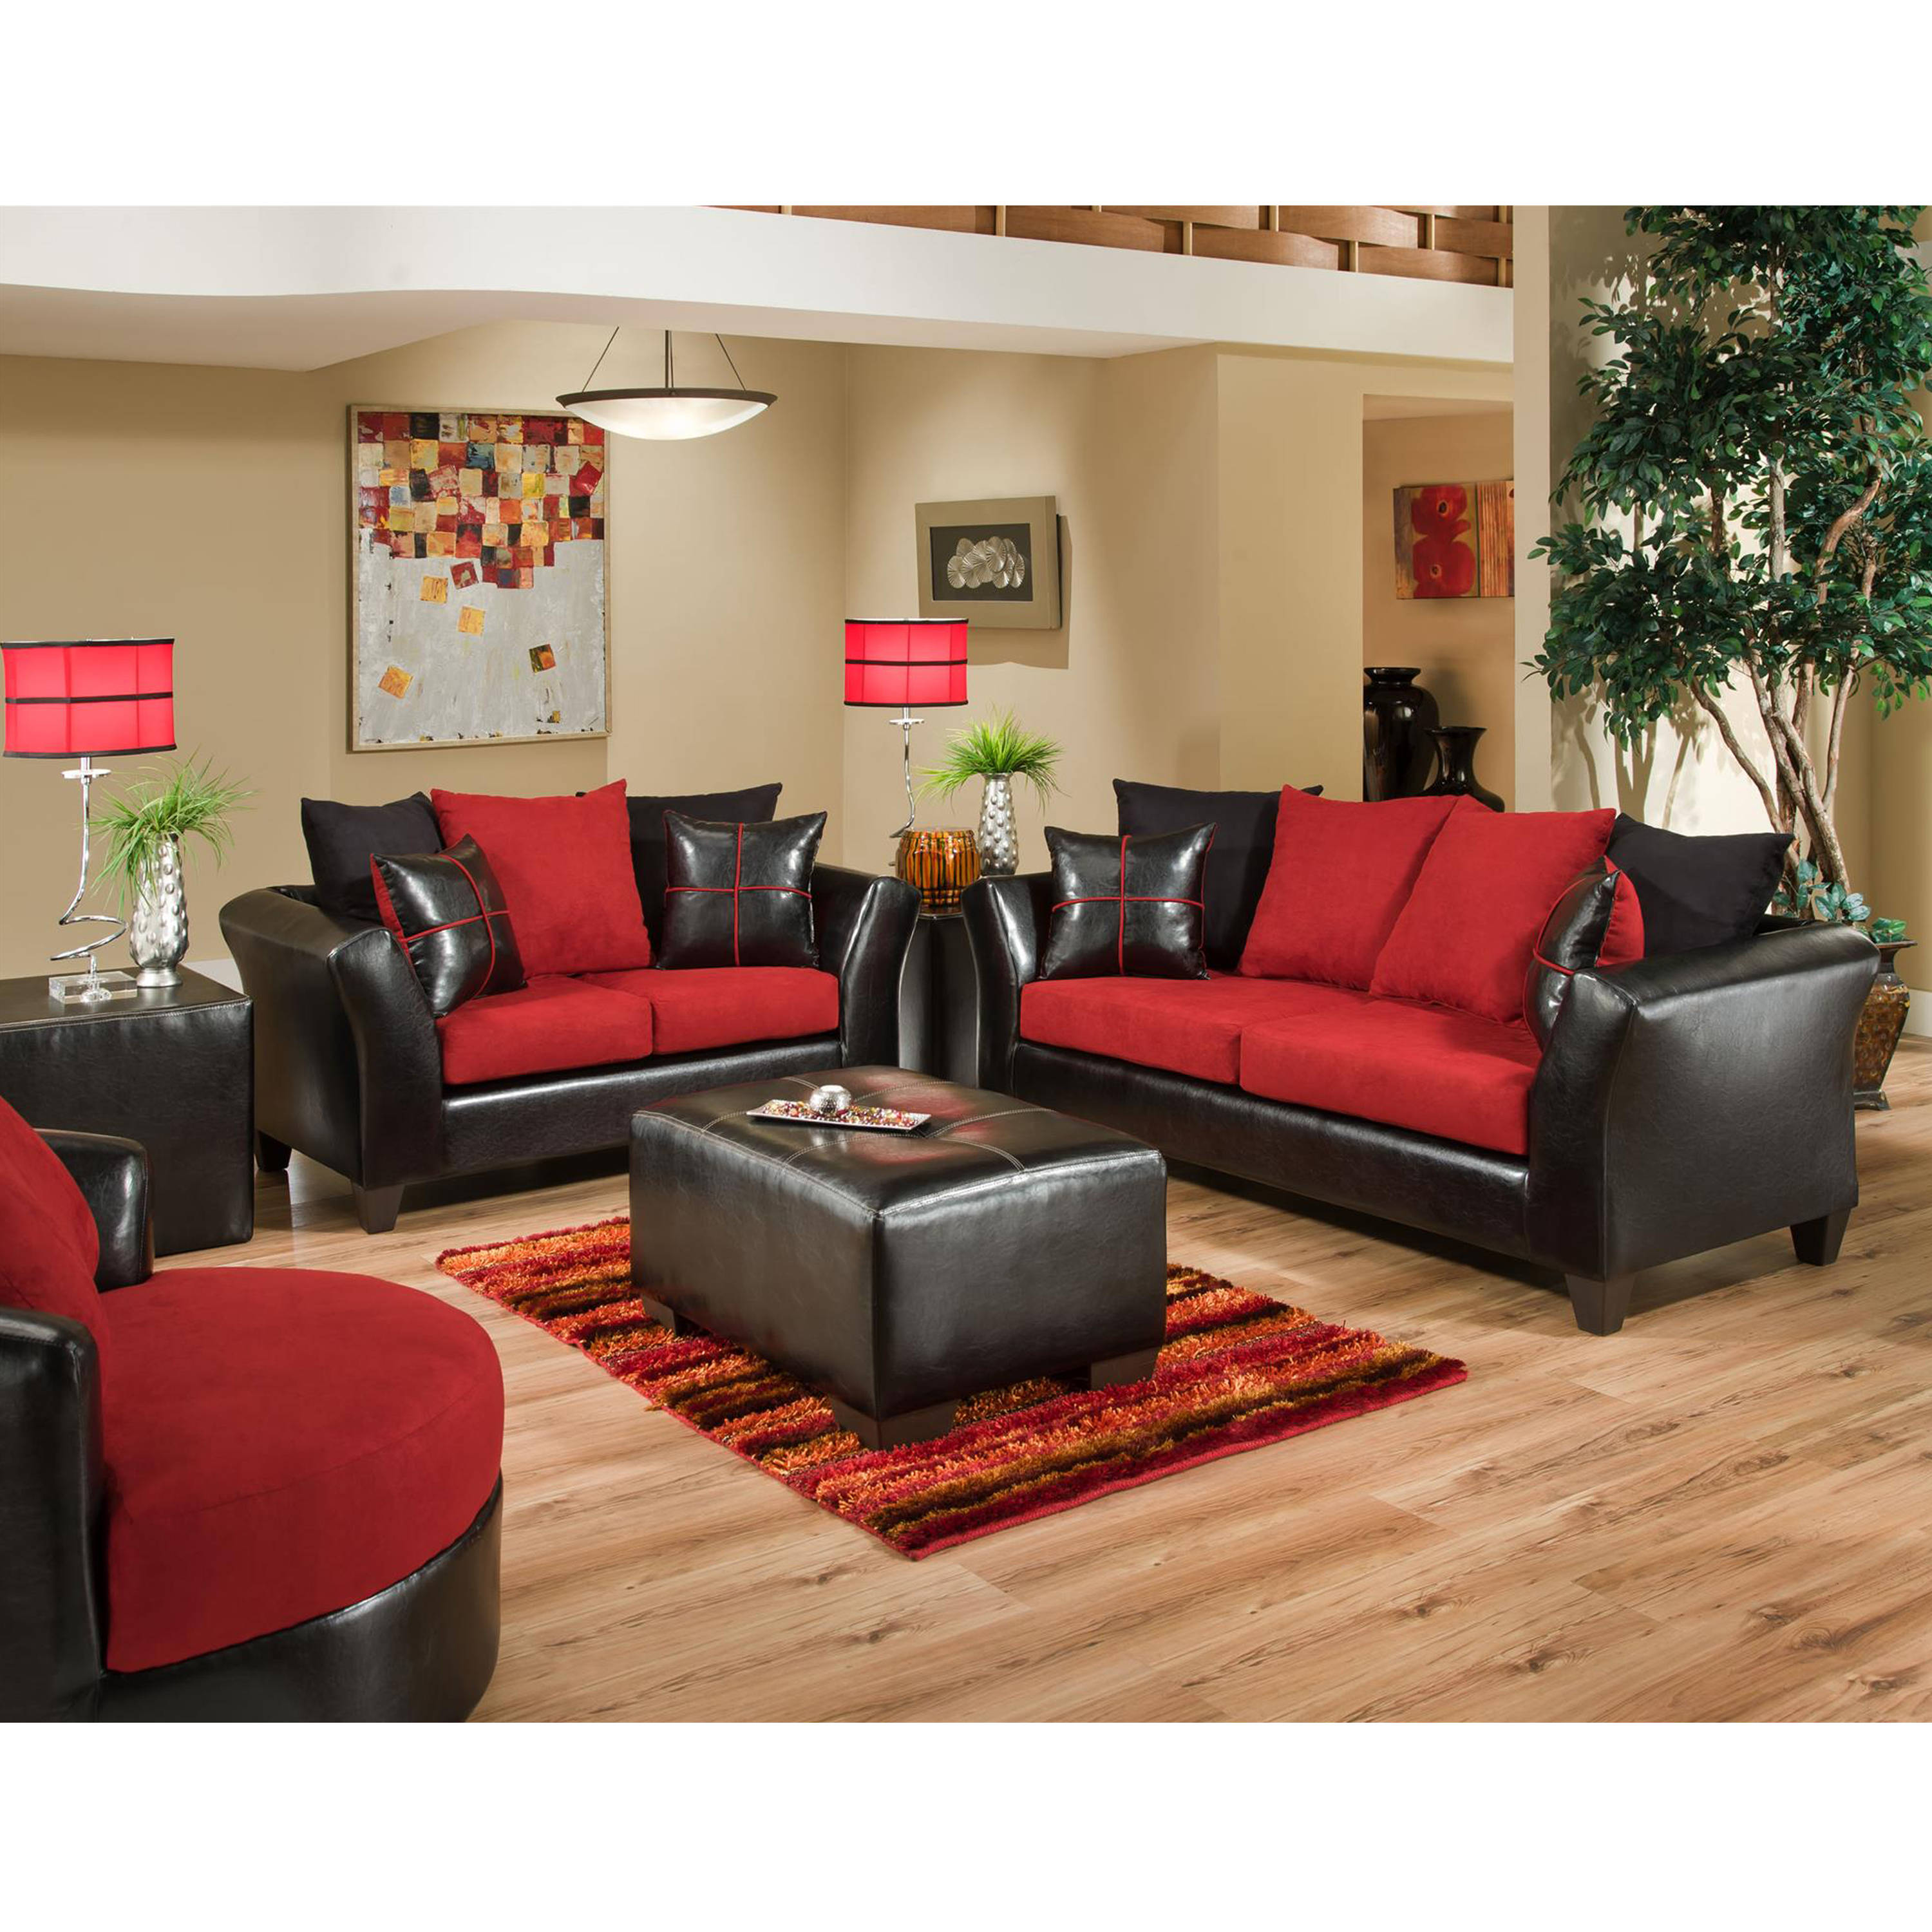 Flash Furniture Riverstone Red Black 2pc Living Room Set within 14 Smart Designs of How to Build Red And Black Living Room Set